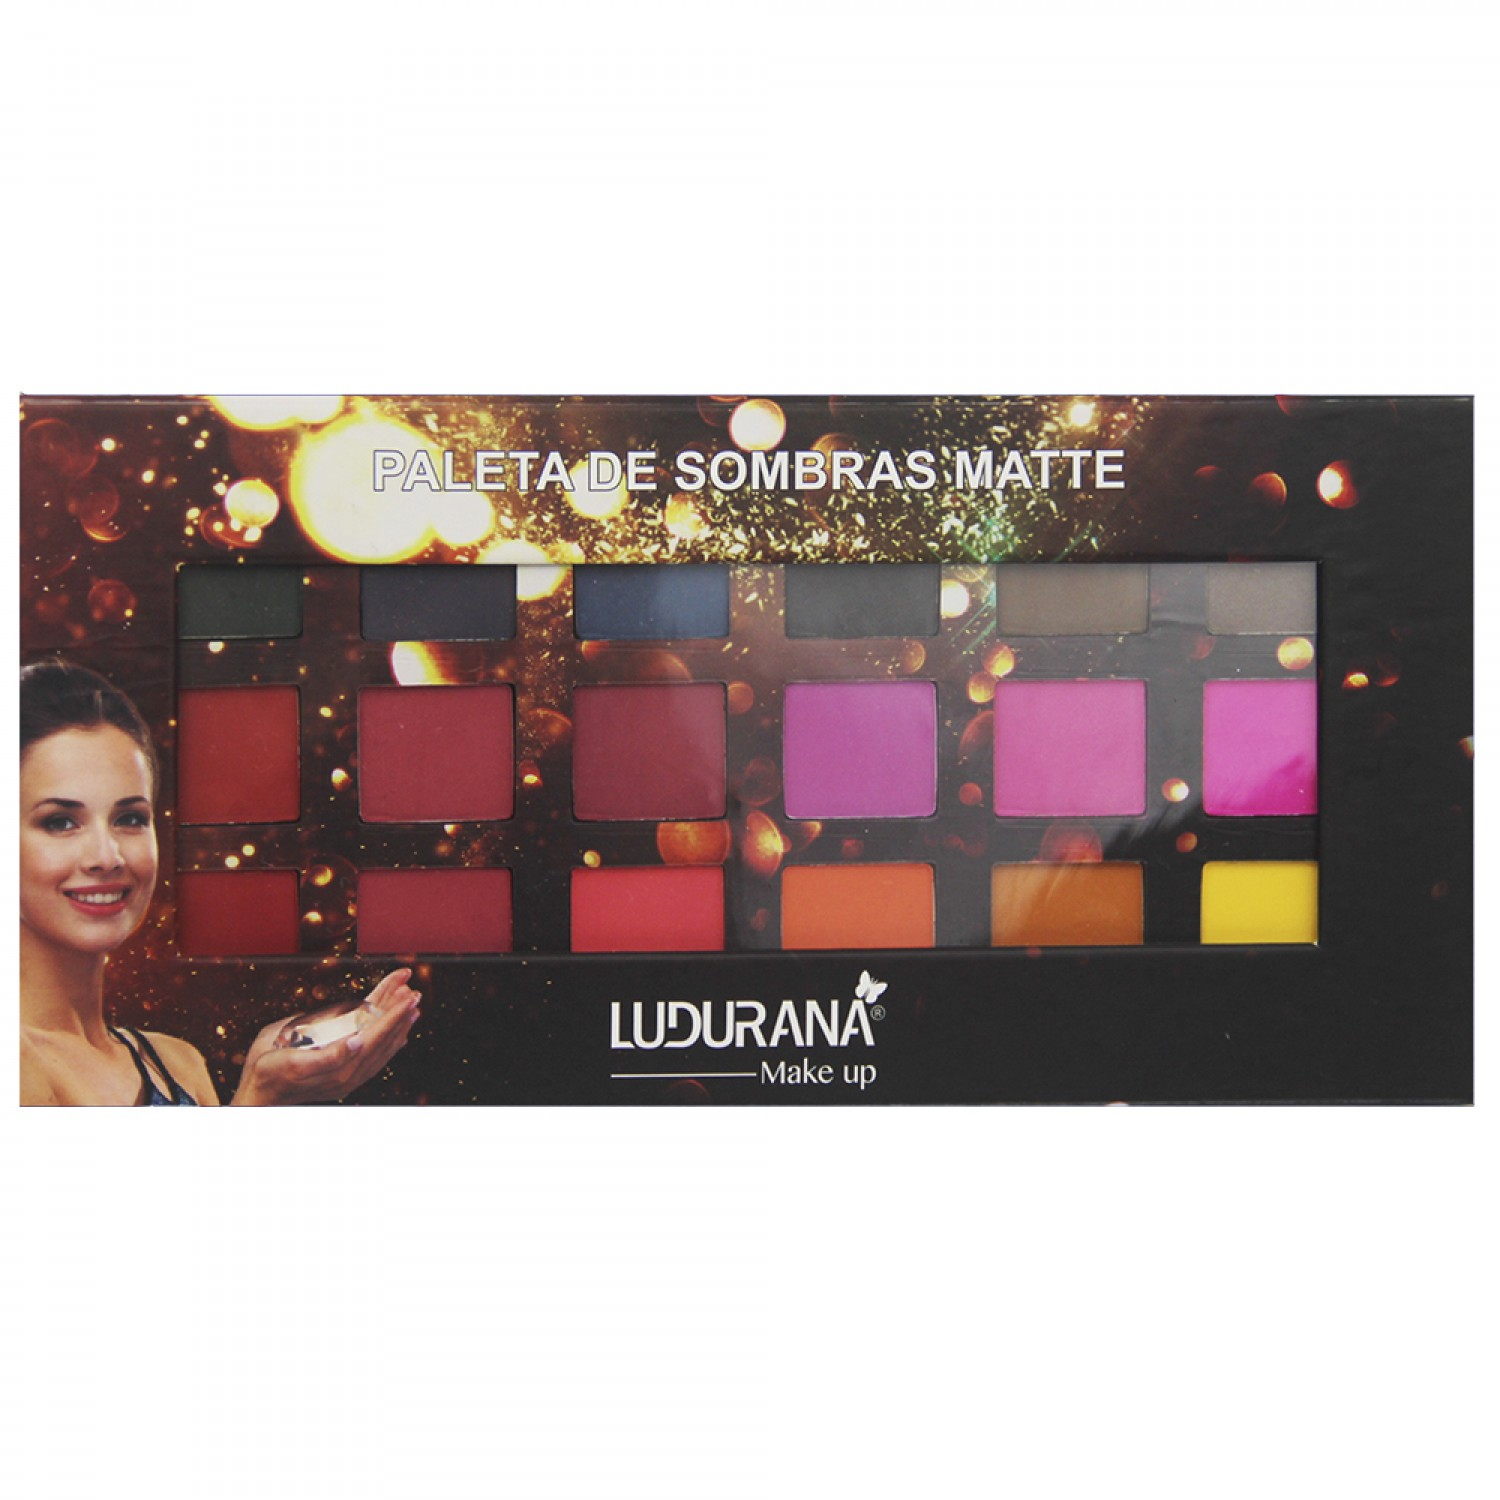 Paleta de Sombras Matte Ludurana Make Up